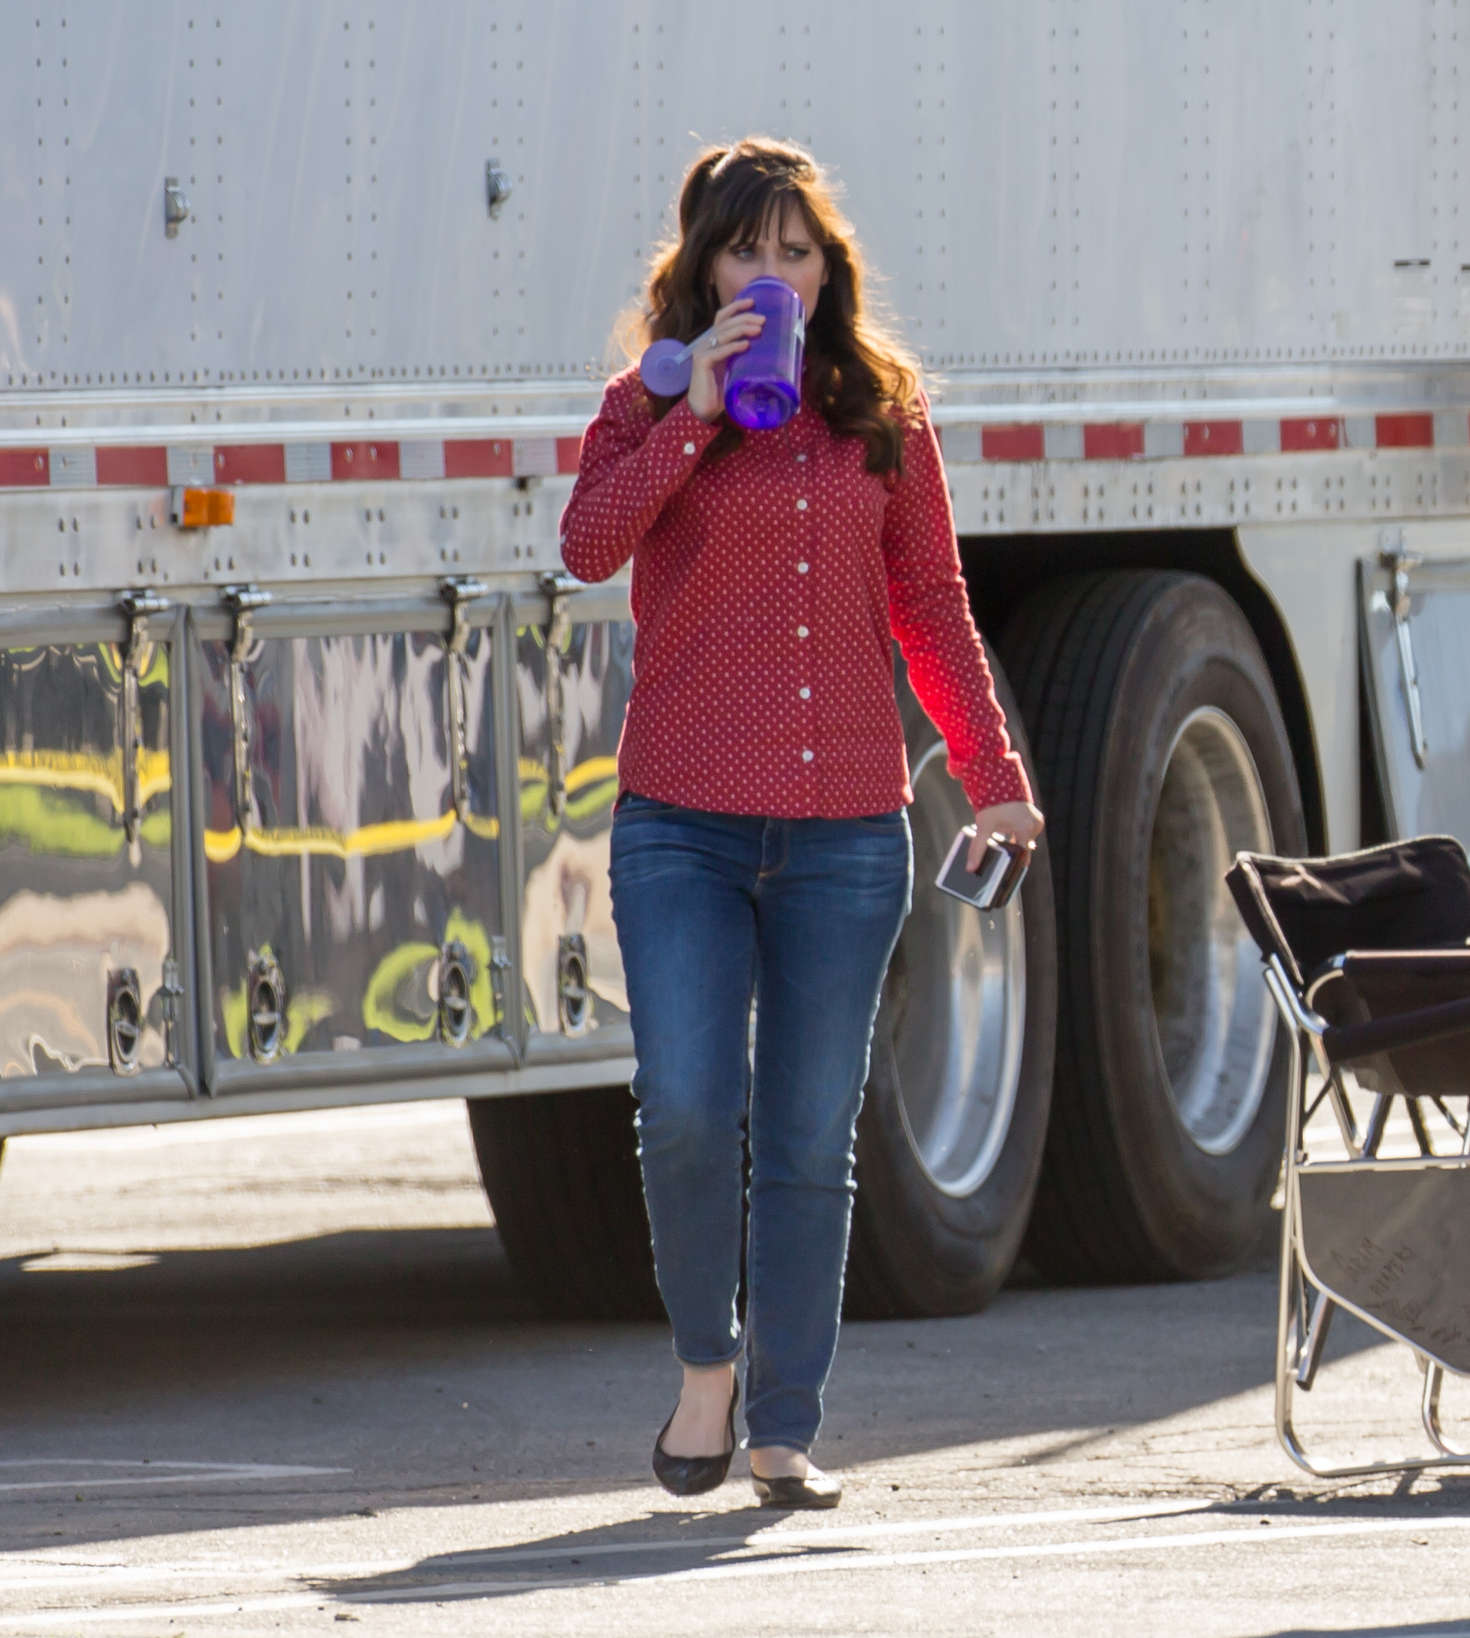 Zooey Deschanel on the set of New Girl in Los Angeles